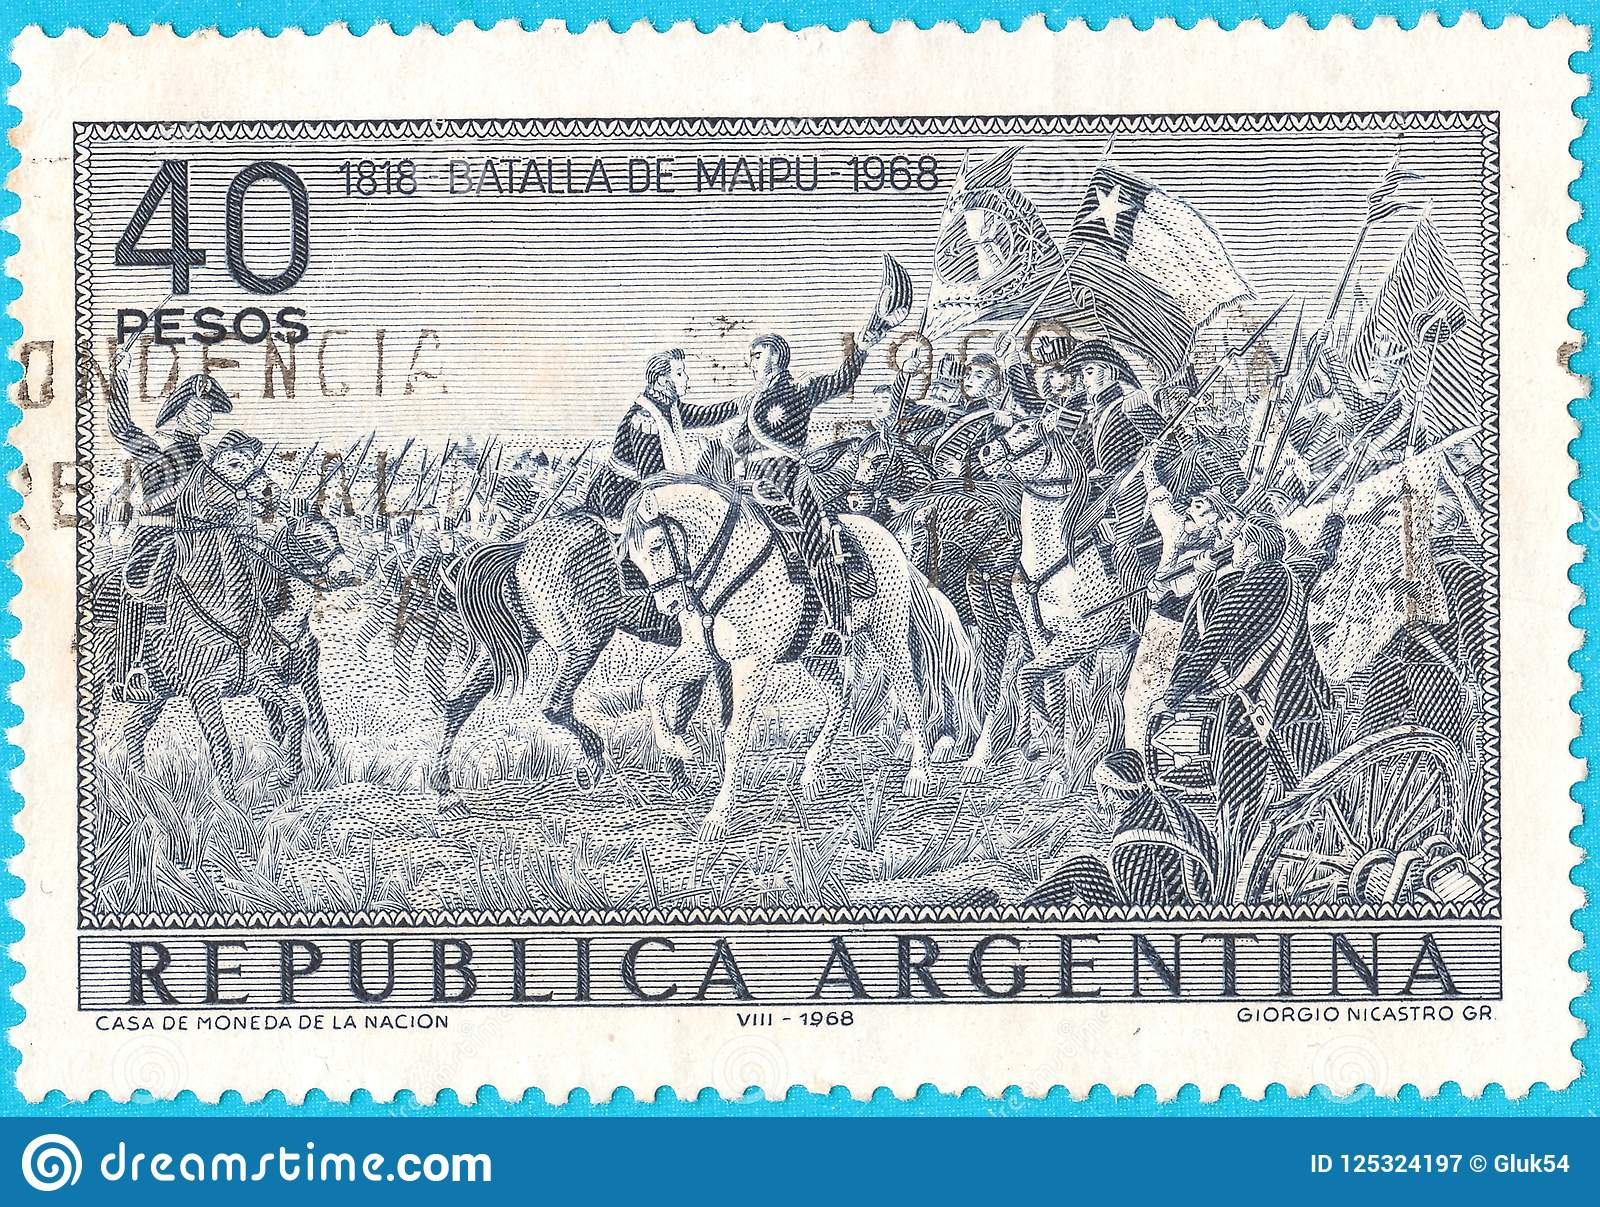 Canceled postage stamp depicting Battle of Maipu near Santiago, Chile on April 5, 1818 between South American rebels and Spanish r